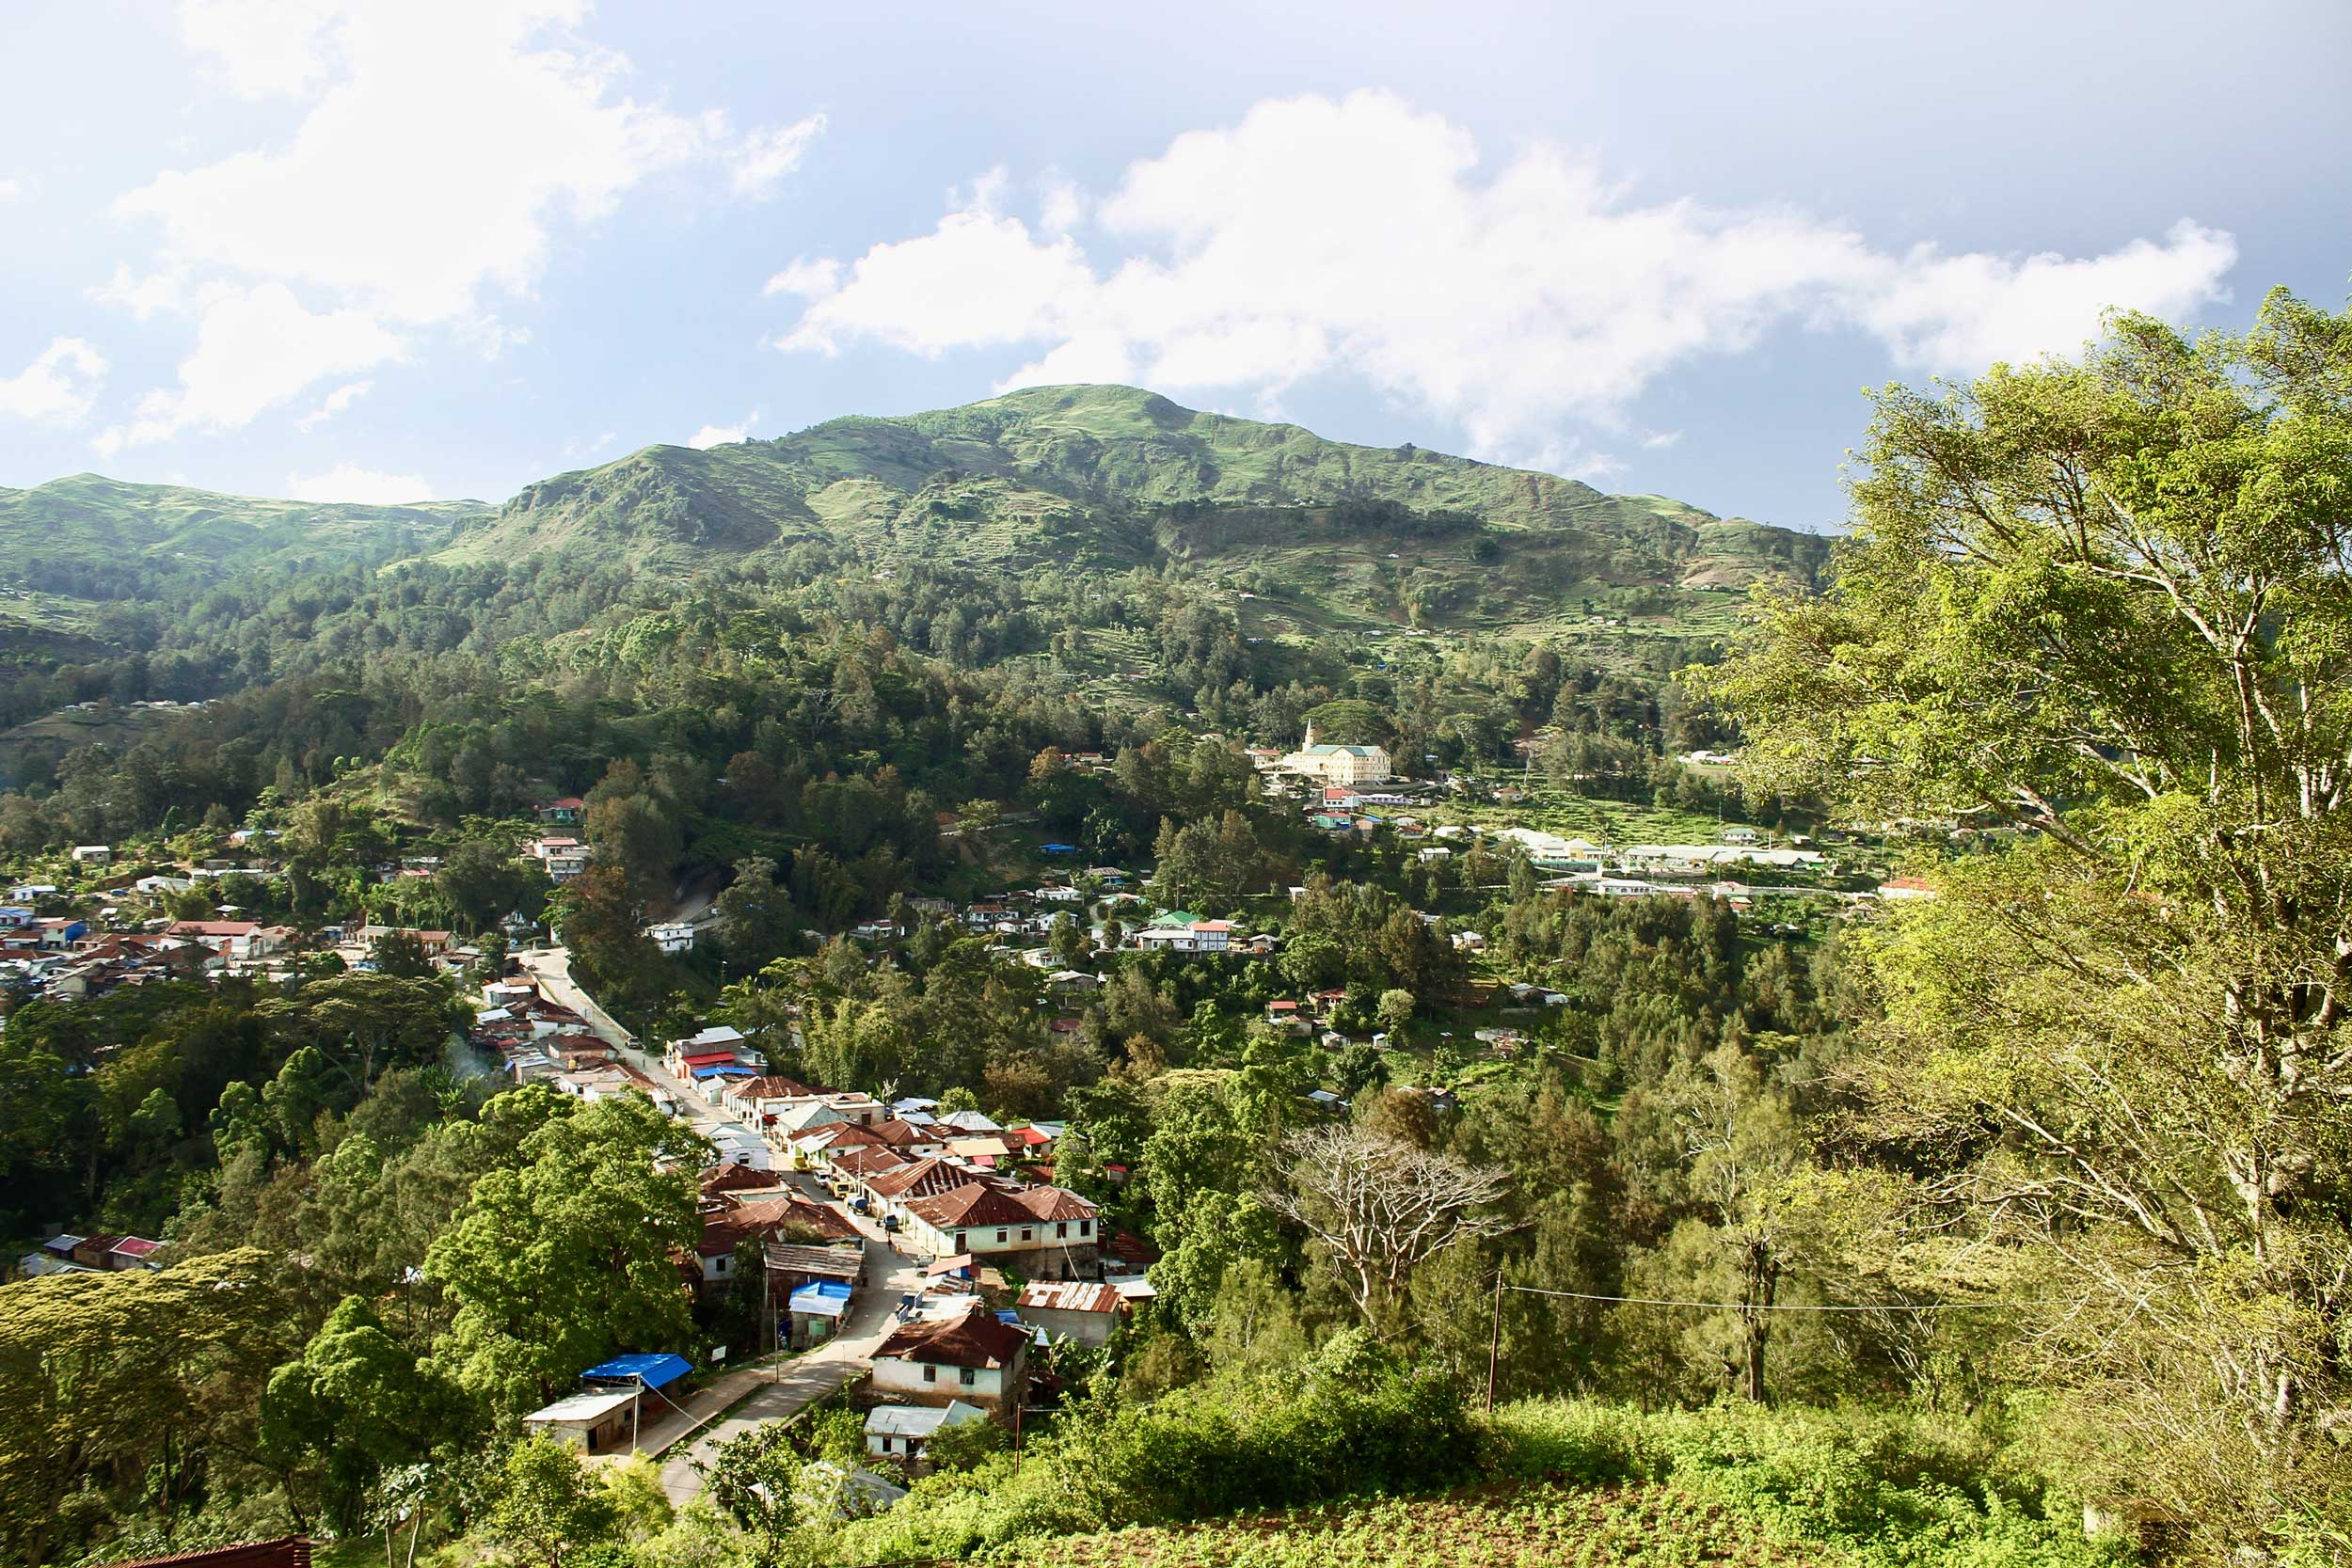 Long shot of a rustic village in a green valley with a hill in the distance, Timor-Leste